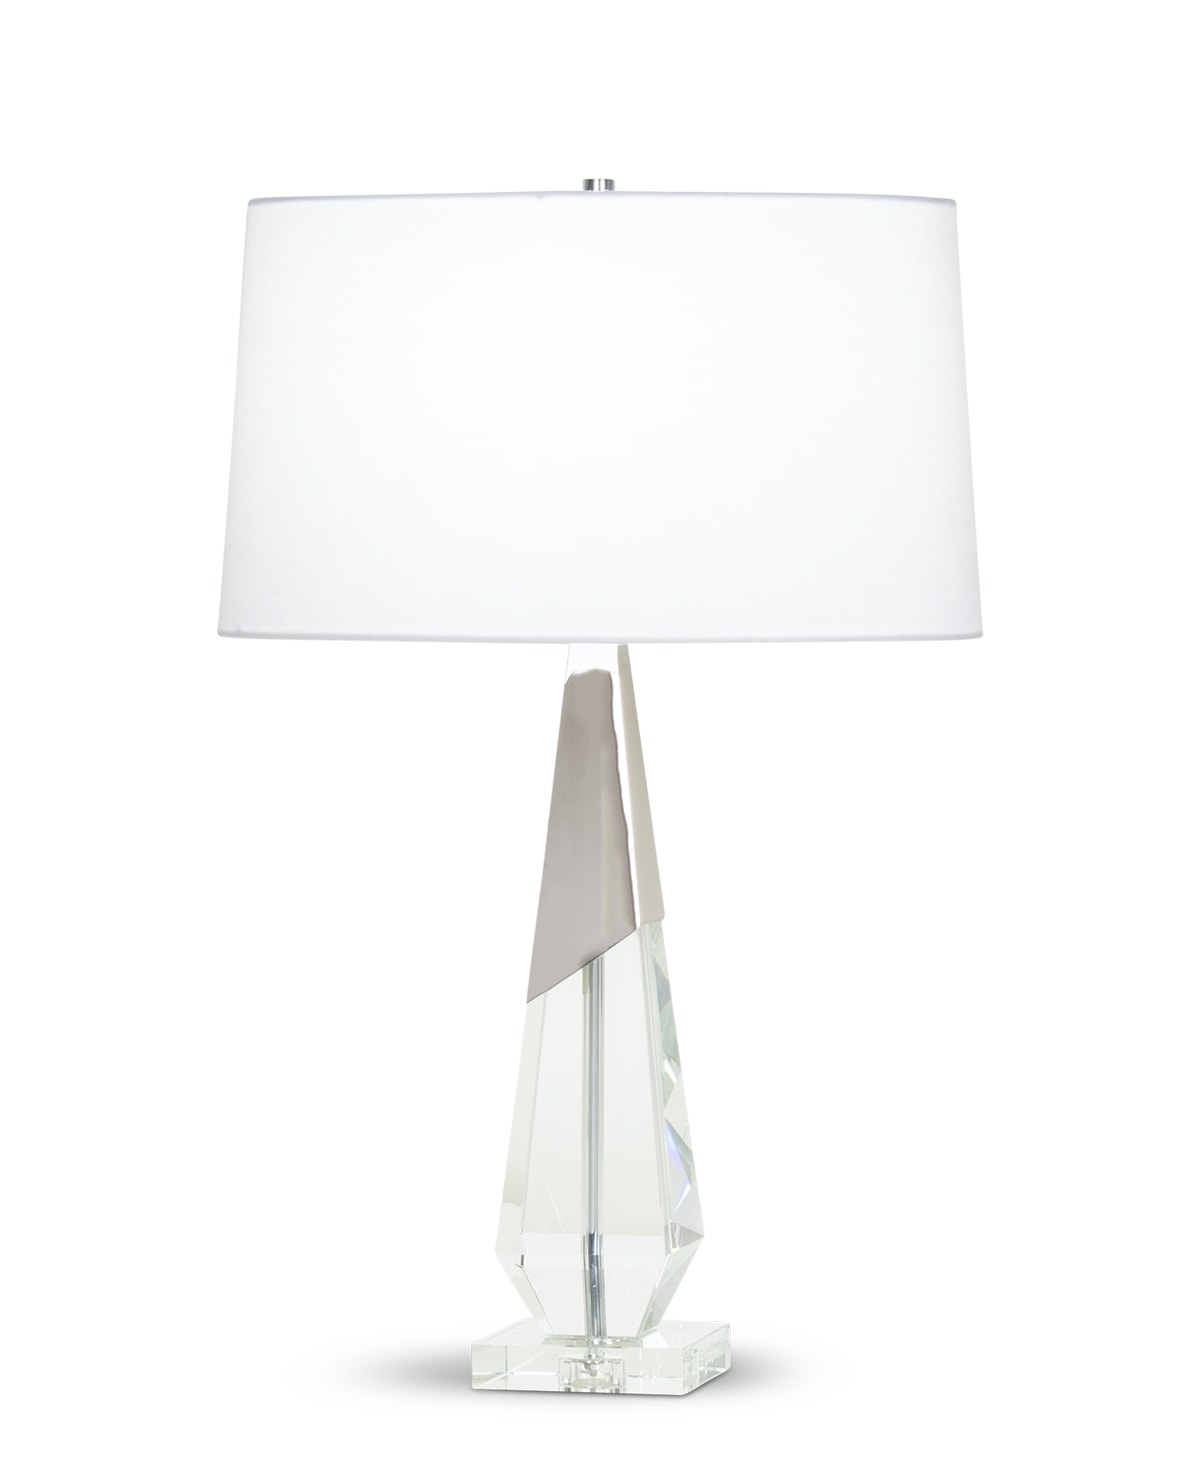 FlowDecor Nathan Table Lamp in crystal and metal with polished nickel finish and white linen oval shade (# 4366)